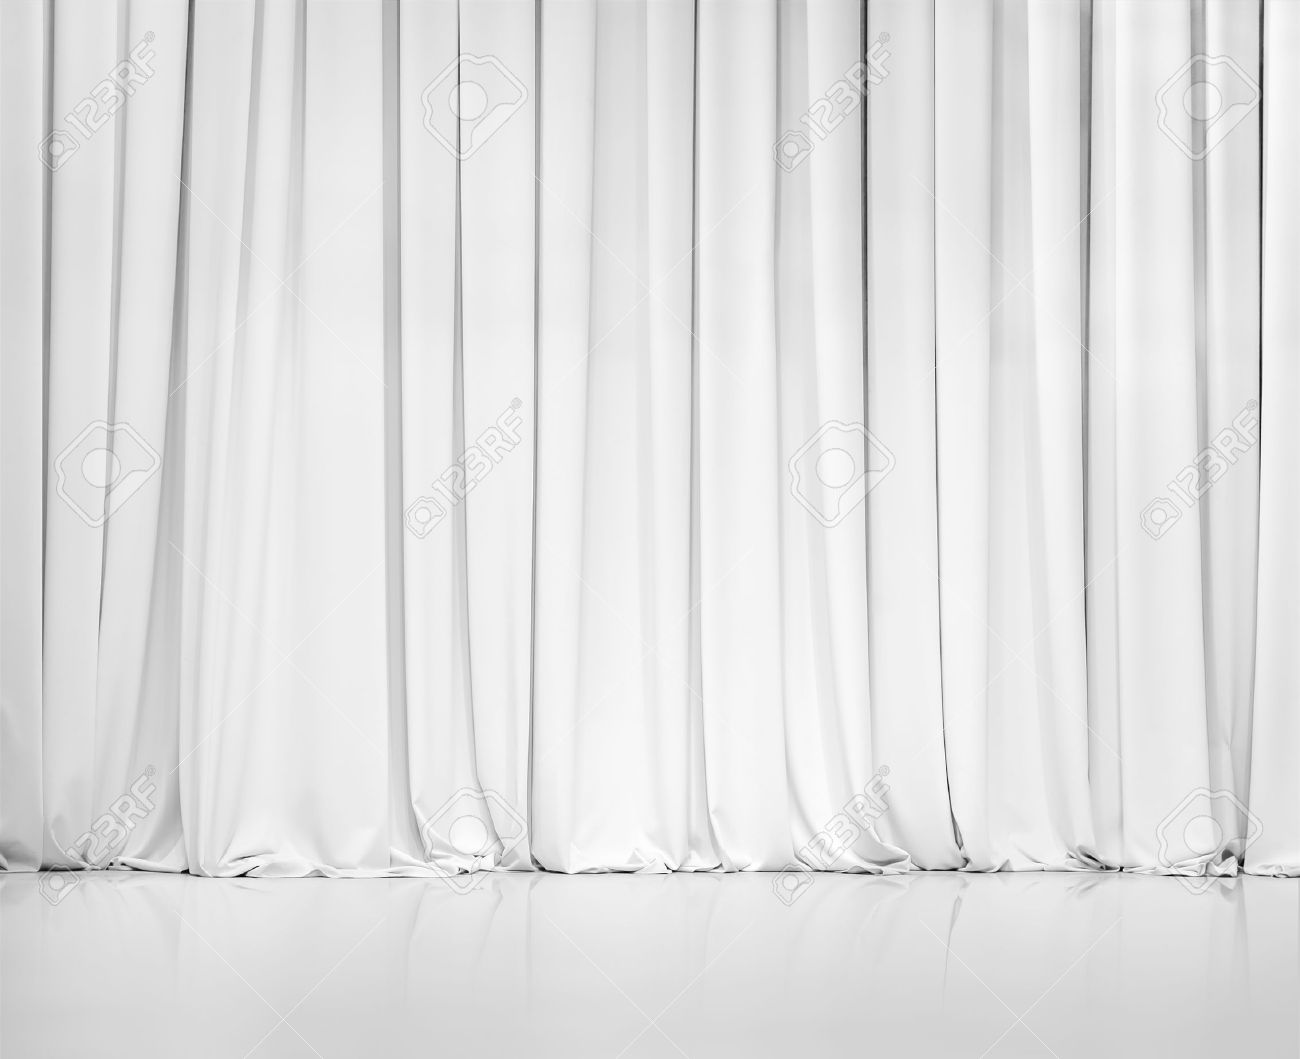 Royalty free or white curtain background drapes royalty free stock - White Curtain Or Drapes Stock Photo 23708743